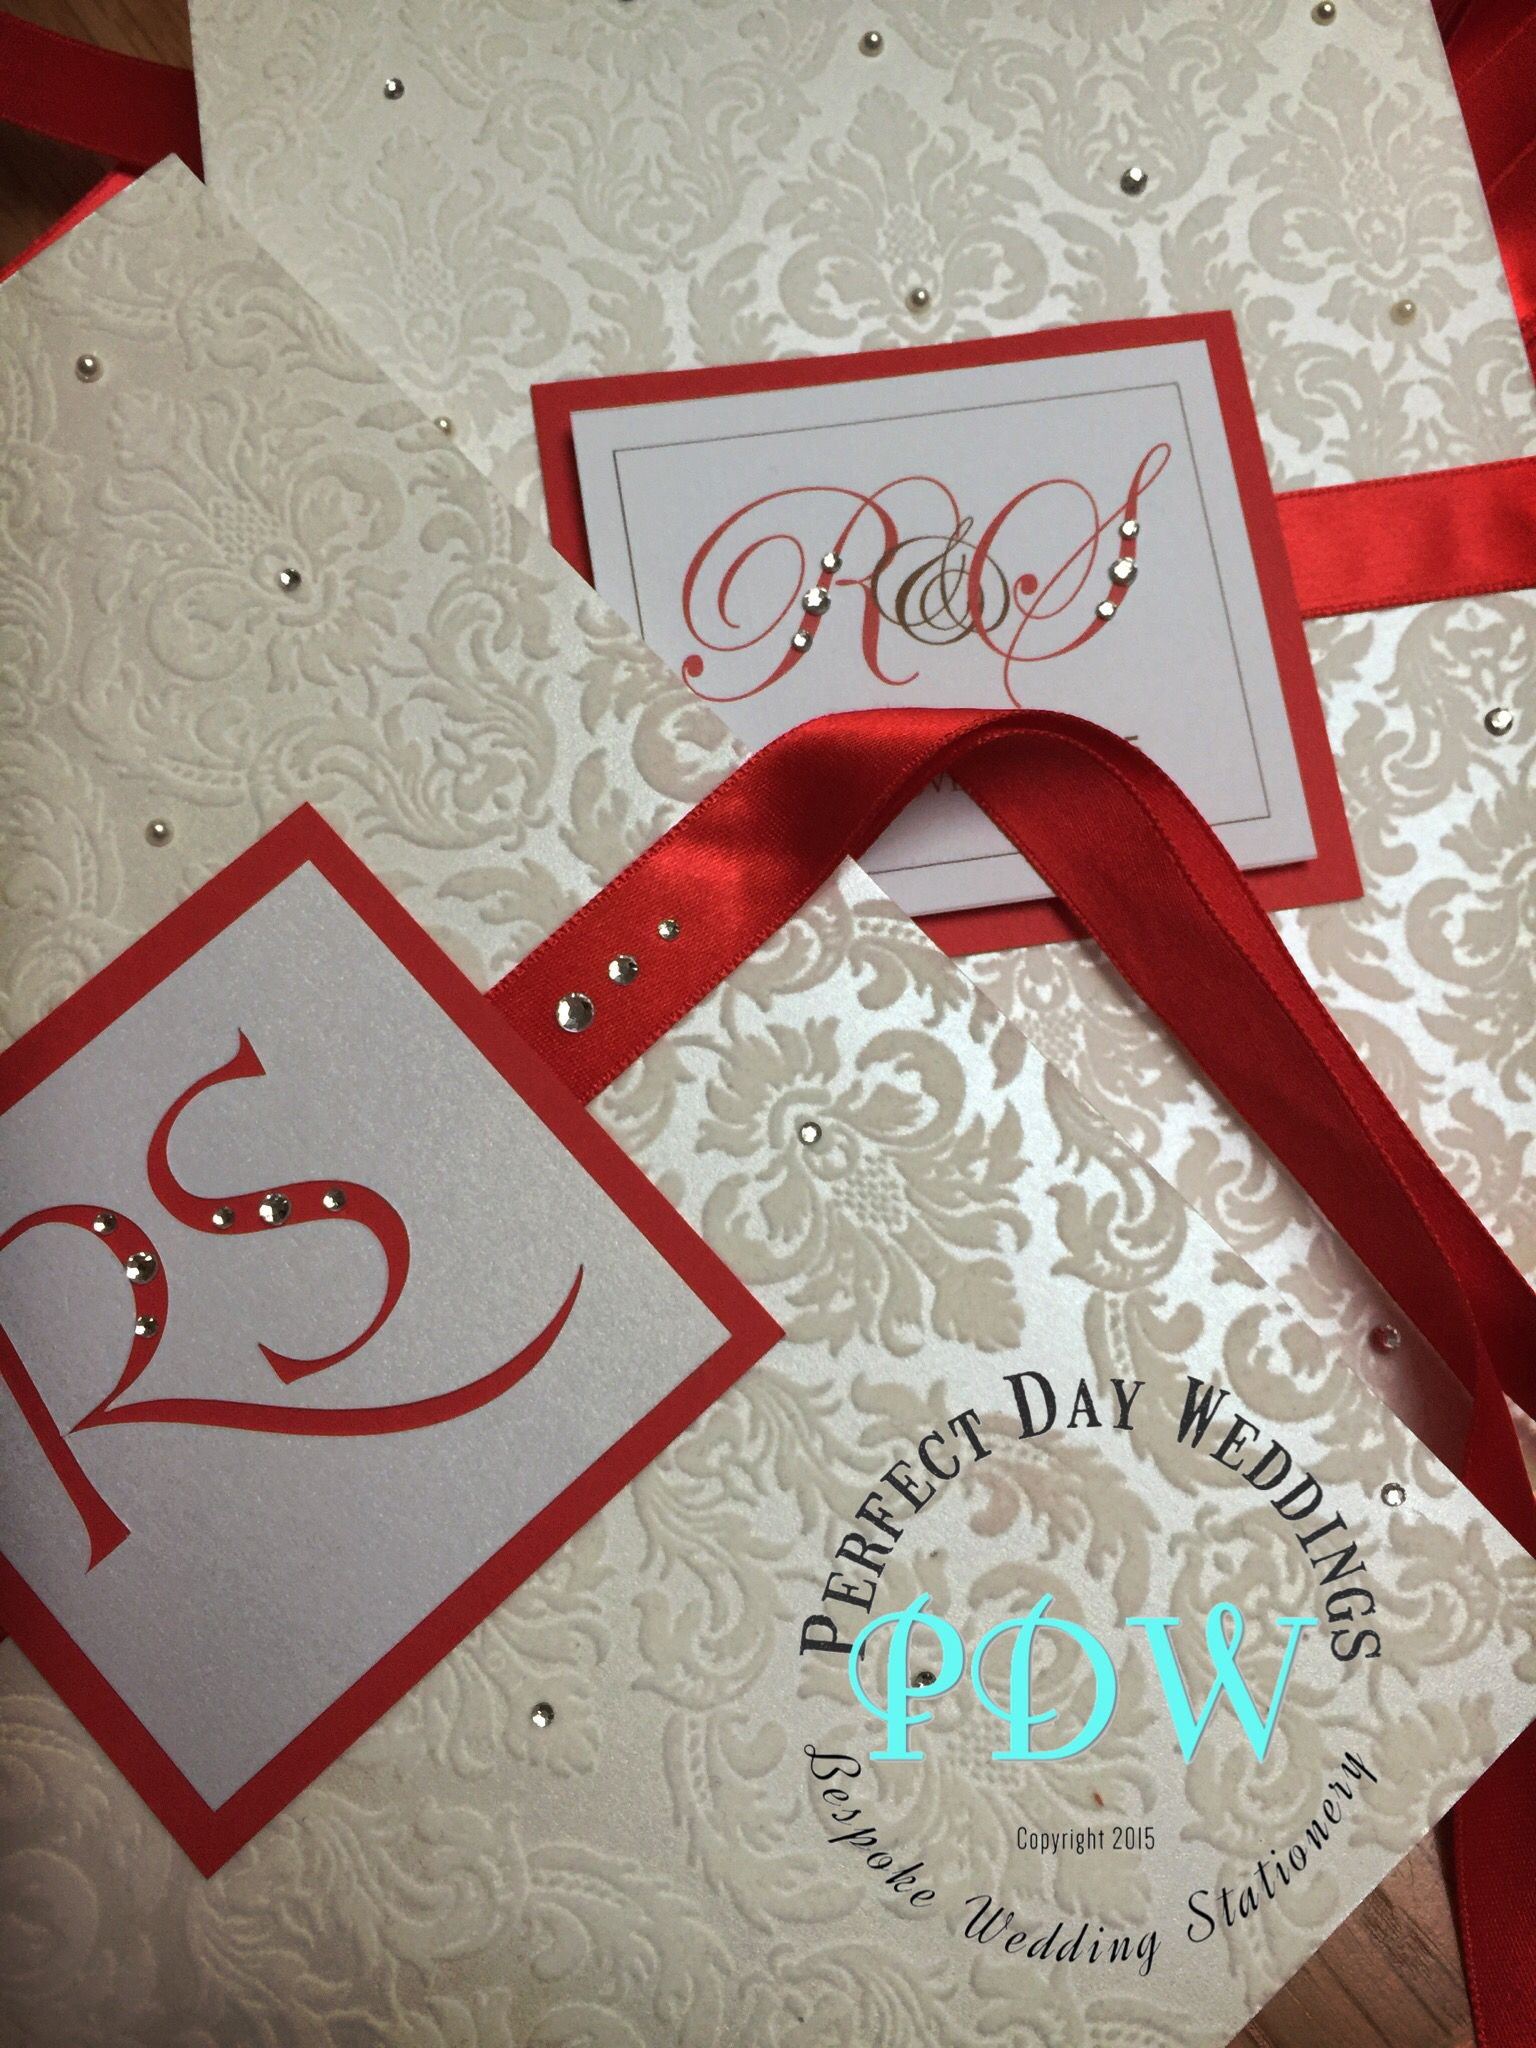 Beautiful Red Indian Wedding Invitation With Flock Card And Satin